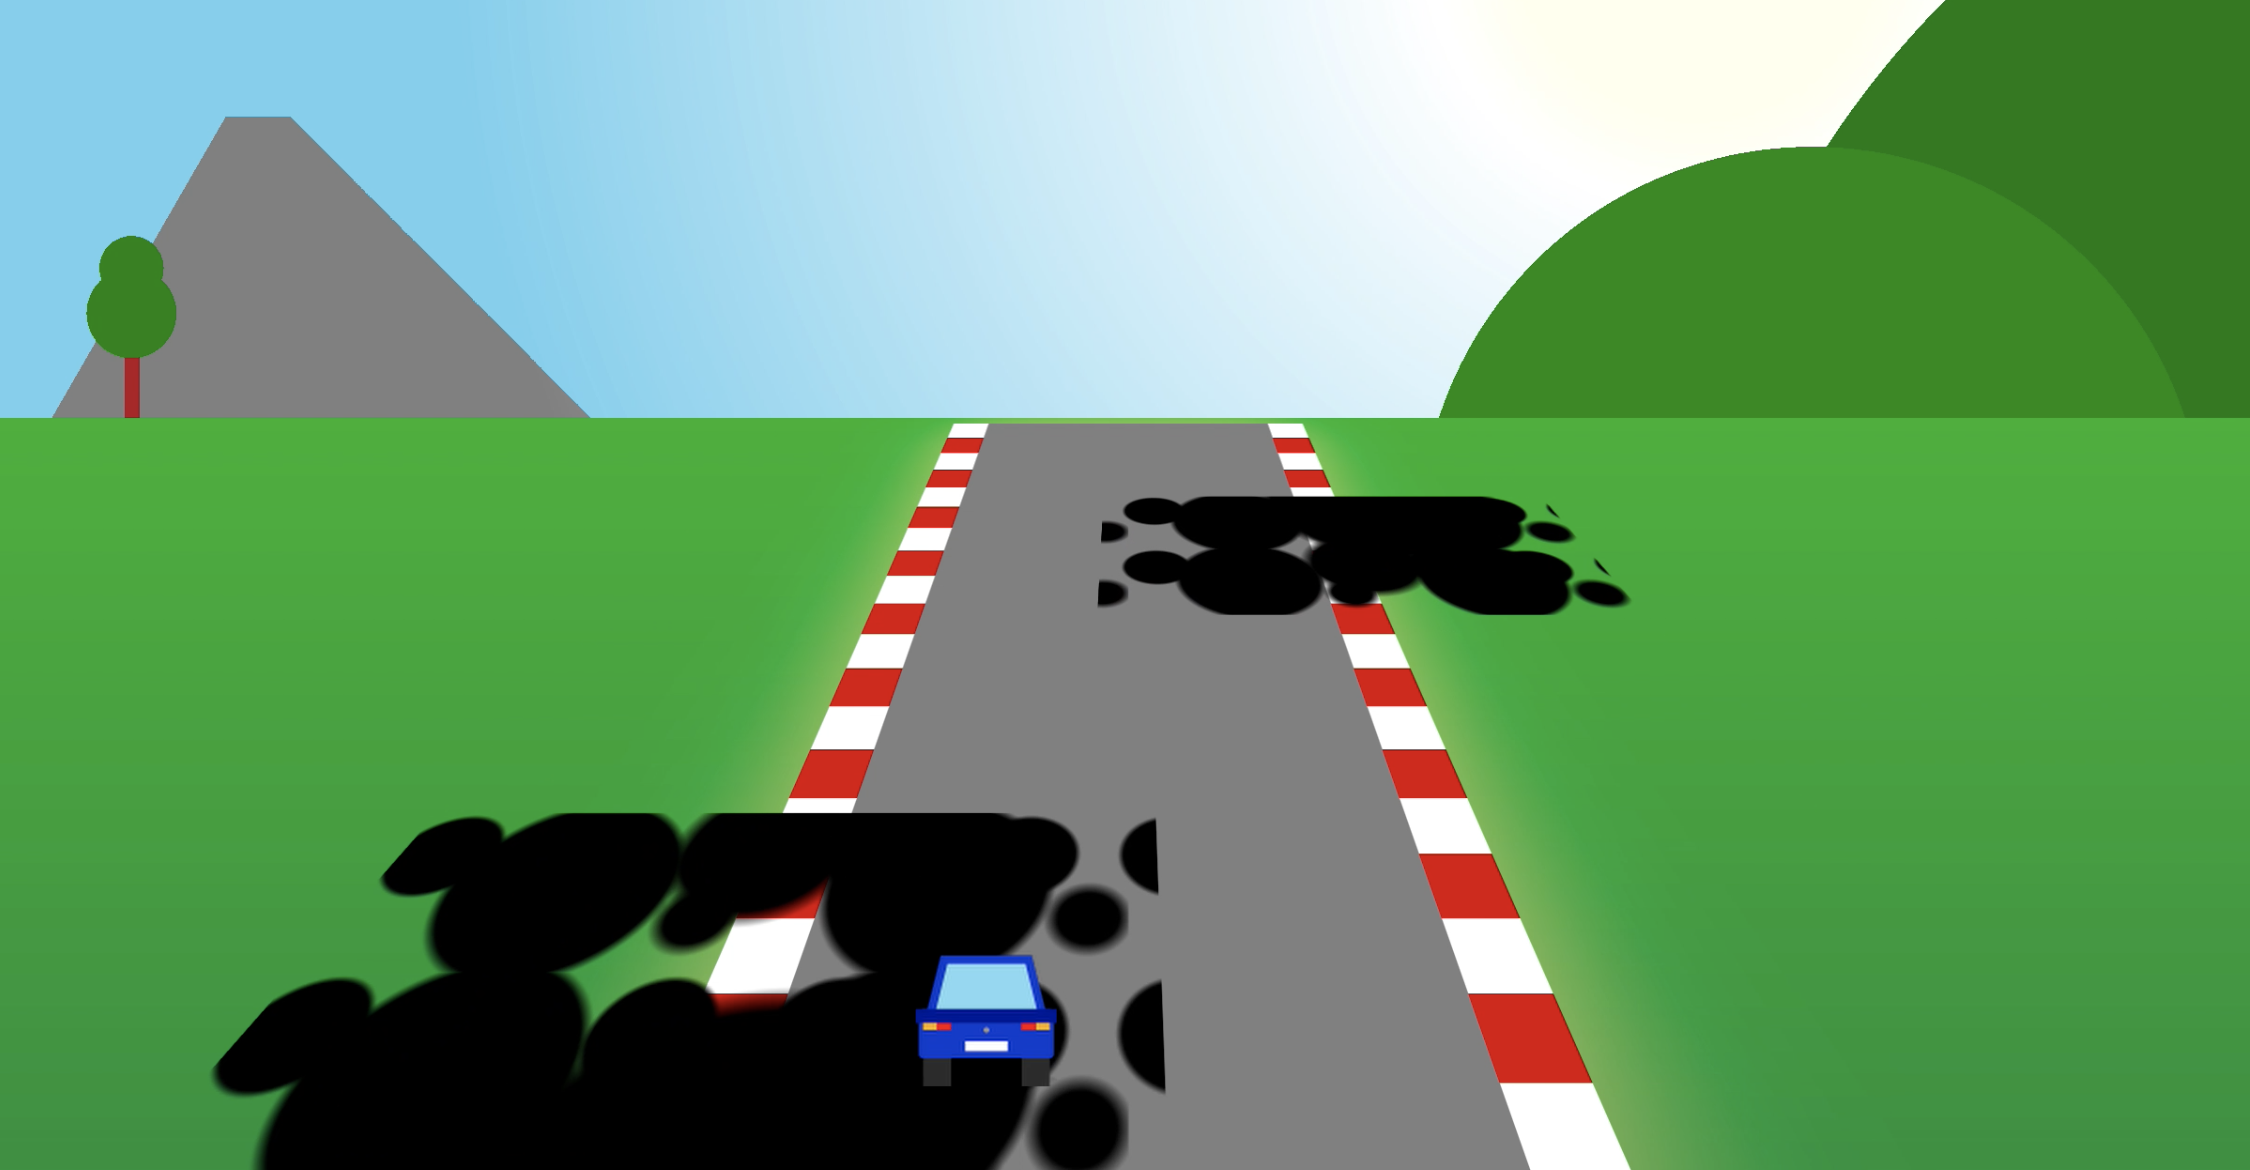 Screenshot of the game with the car moving on top of a grease stain and no game over message